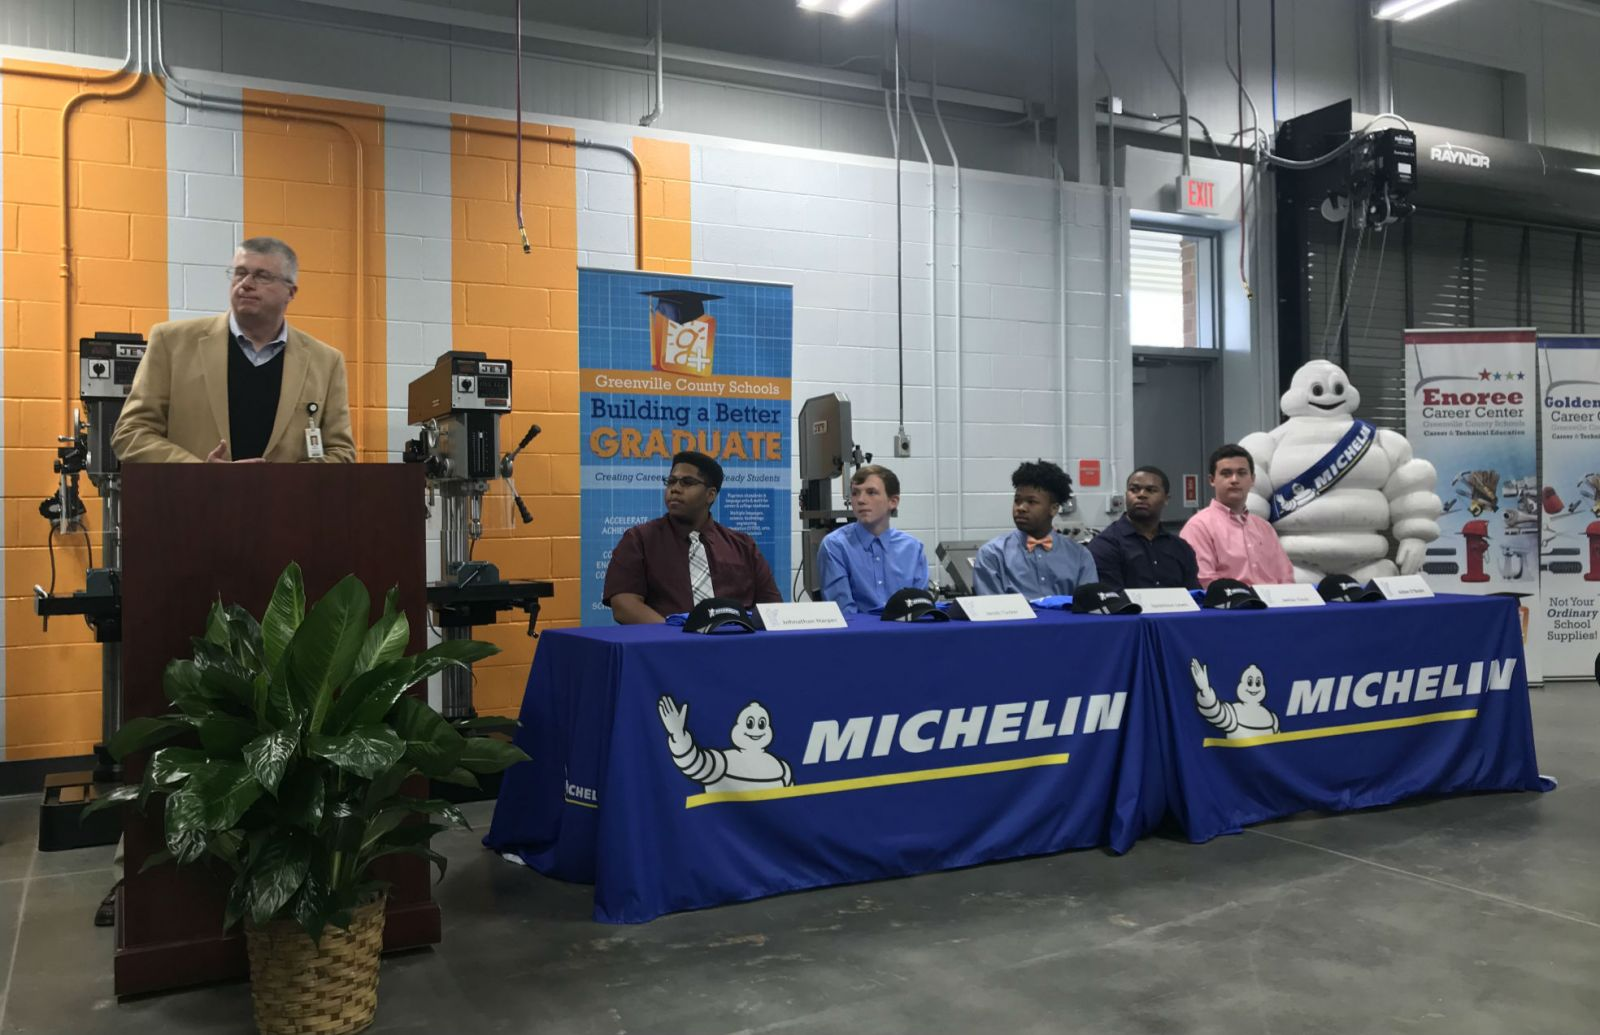 Michelin North America and Greenville County schools partnered for the Michelin Youth Apprenticeship program and held a signing day for the first five apprentices. From left, Burke Royster, superintendent of Greenville County schools, and apprentices Johnathan Harper, Jacob Tucker, Iquavious Lewis, Janias Tinch and Aidan O'Boyle. (Photo/Teresa Cutlip)